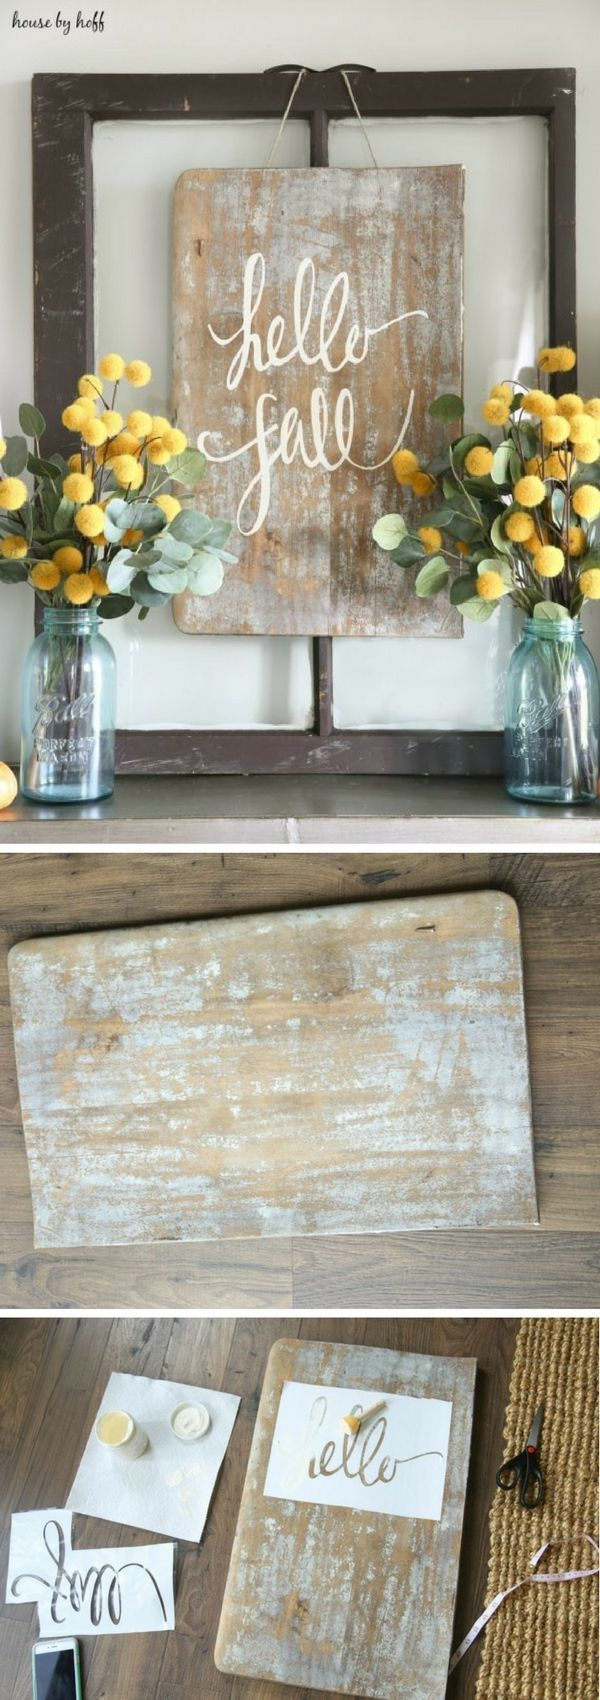 Love this simple DIY sign with chalk couture. angel.chalkcouture.com